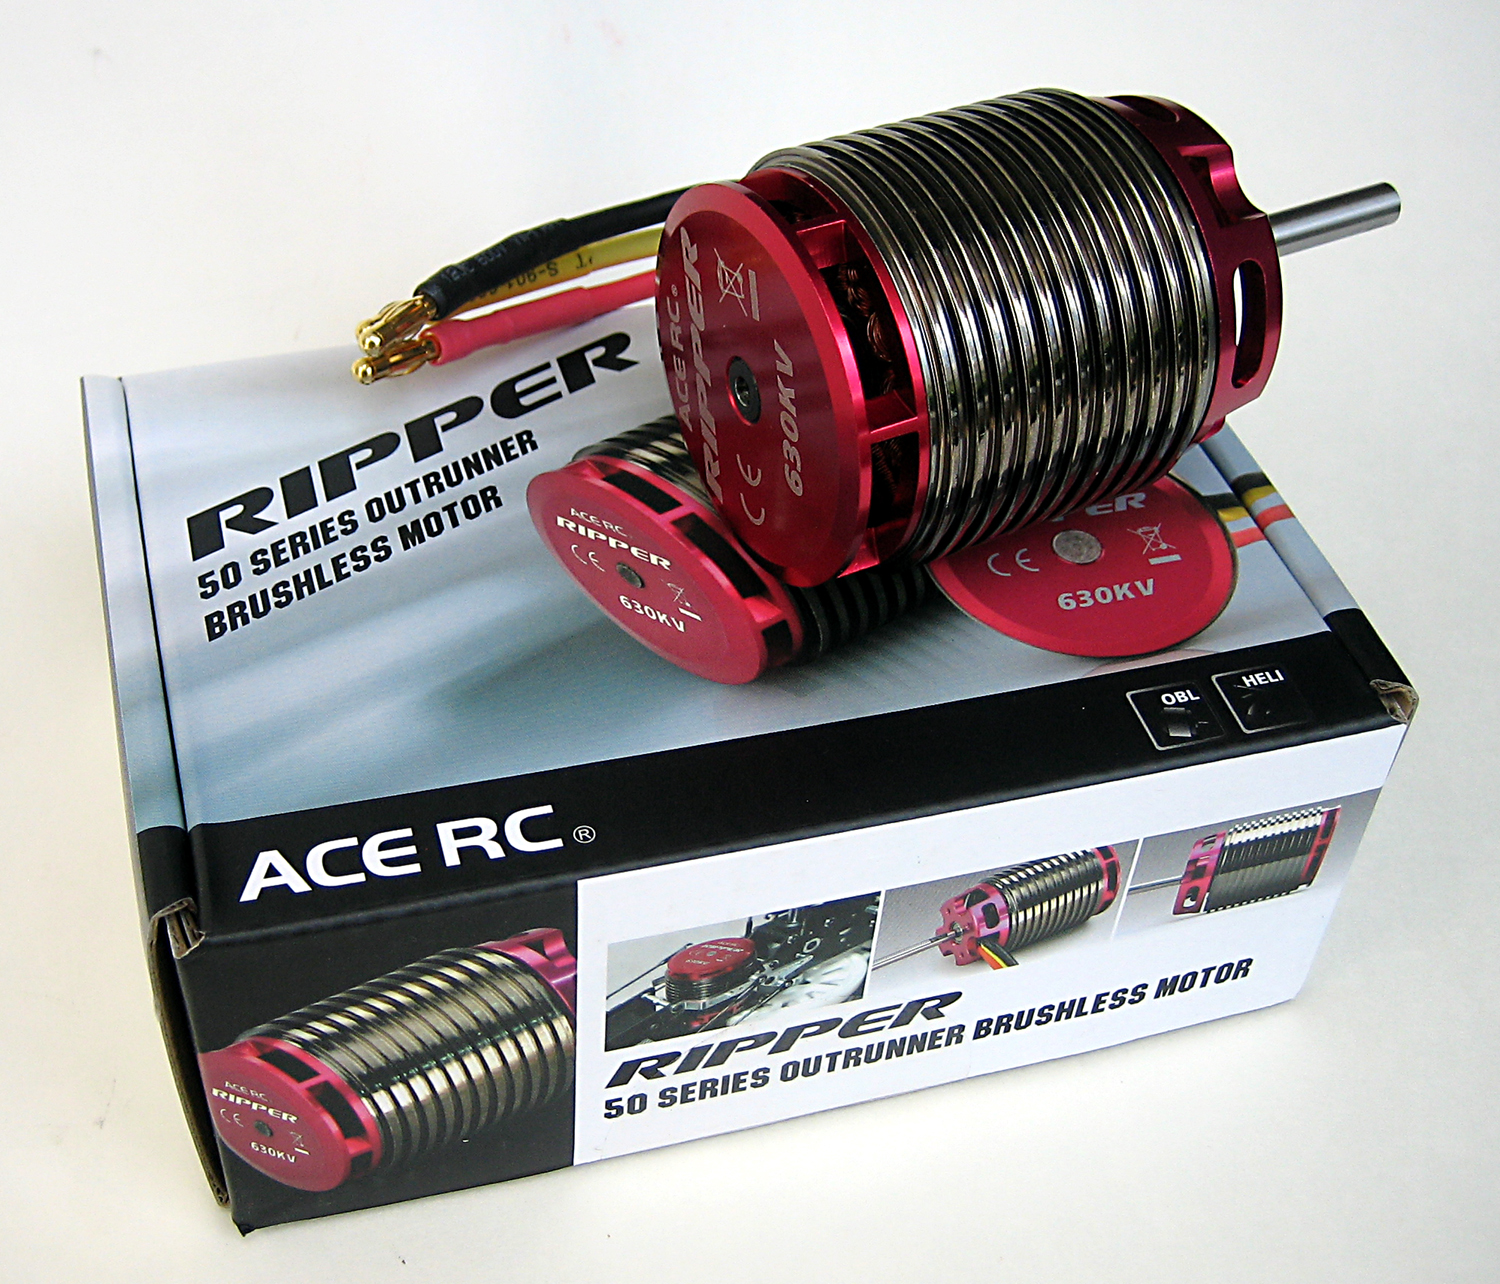 RIPPER OBL 44/49/50 Series Helicopter Brushless Motors